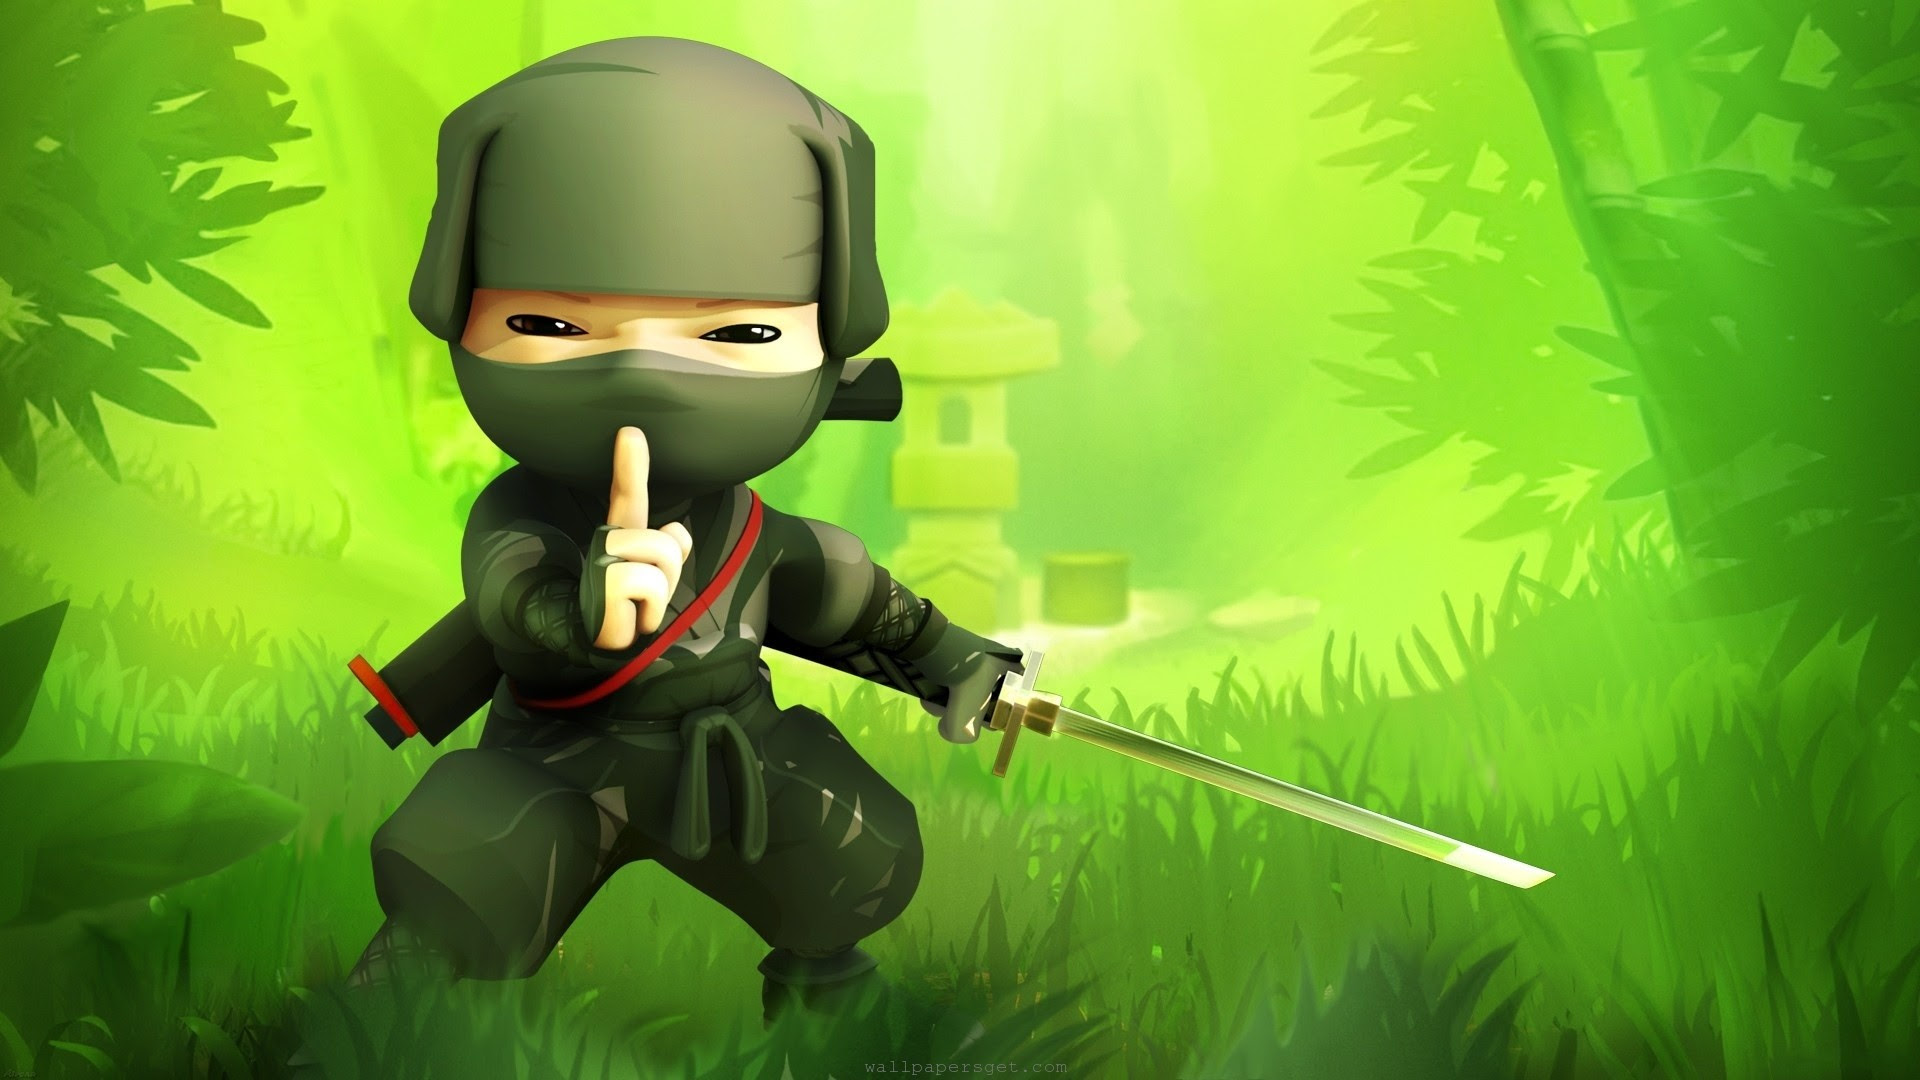 Download 77 Wallpaper Anime Ninja Hd Gratis